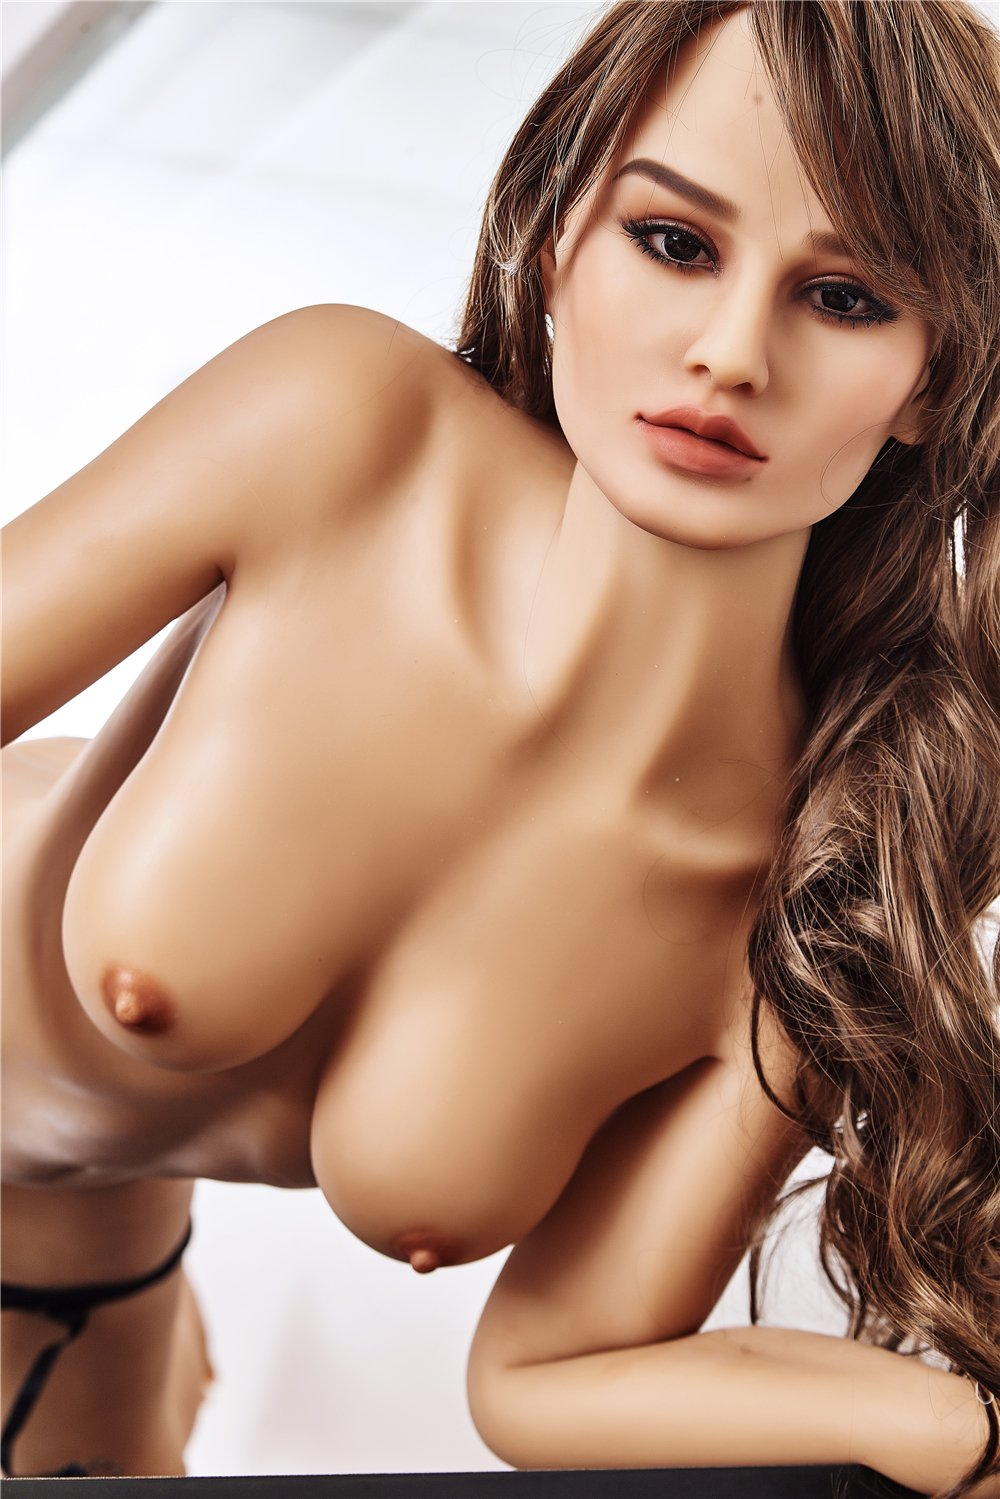 alli 168cm brown hair medium tits skinny flat chested tan skin tpe sex doll(7)